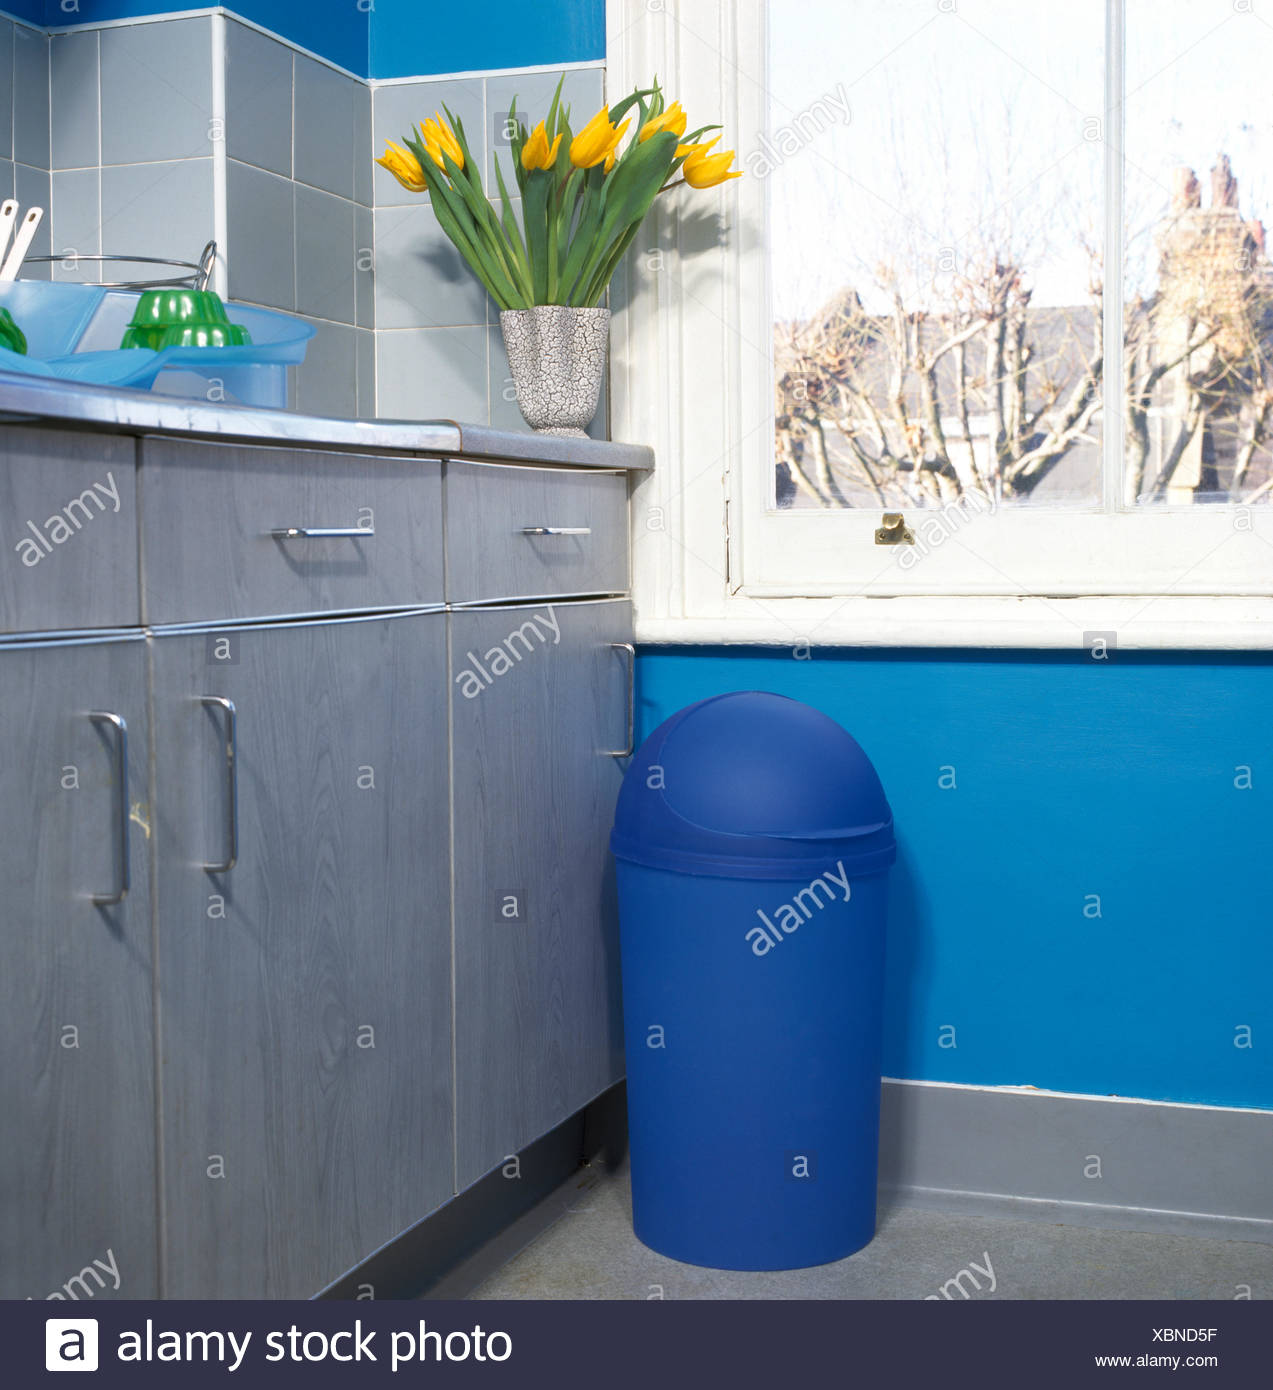 Bin Blue Domestic Stock Photos & Bin Blue Domestic Stock Images - Alamy